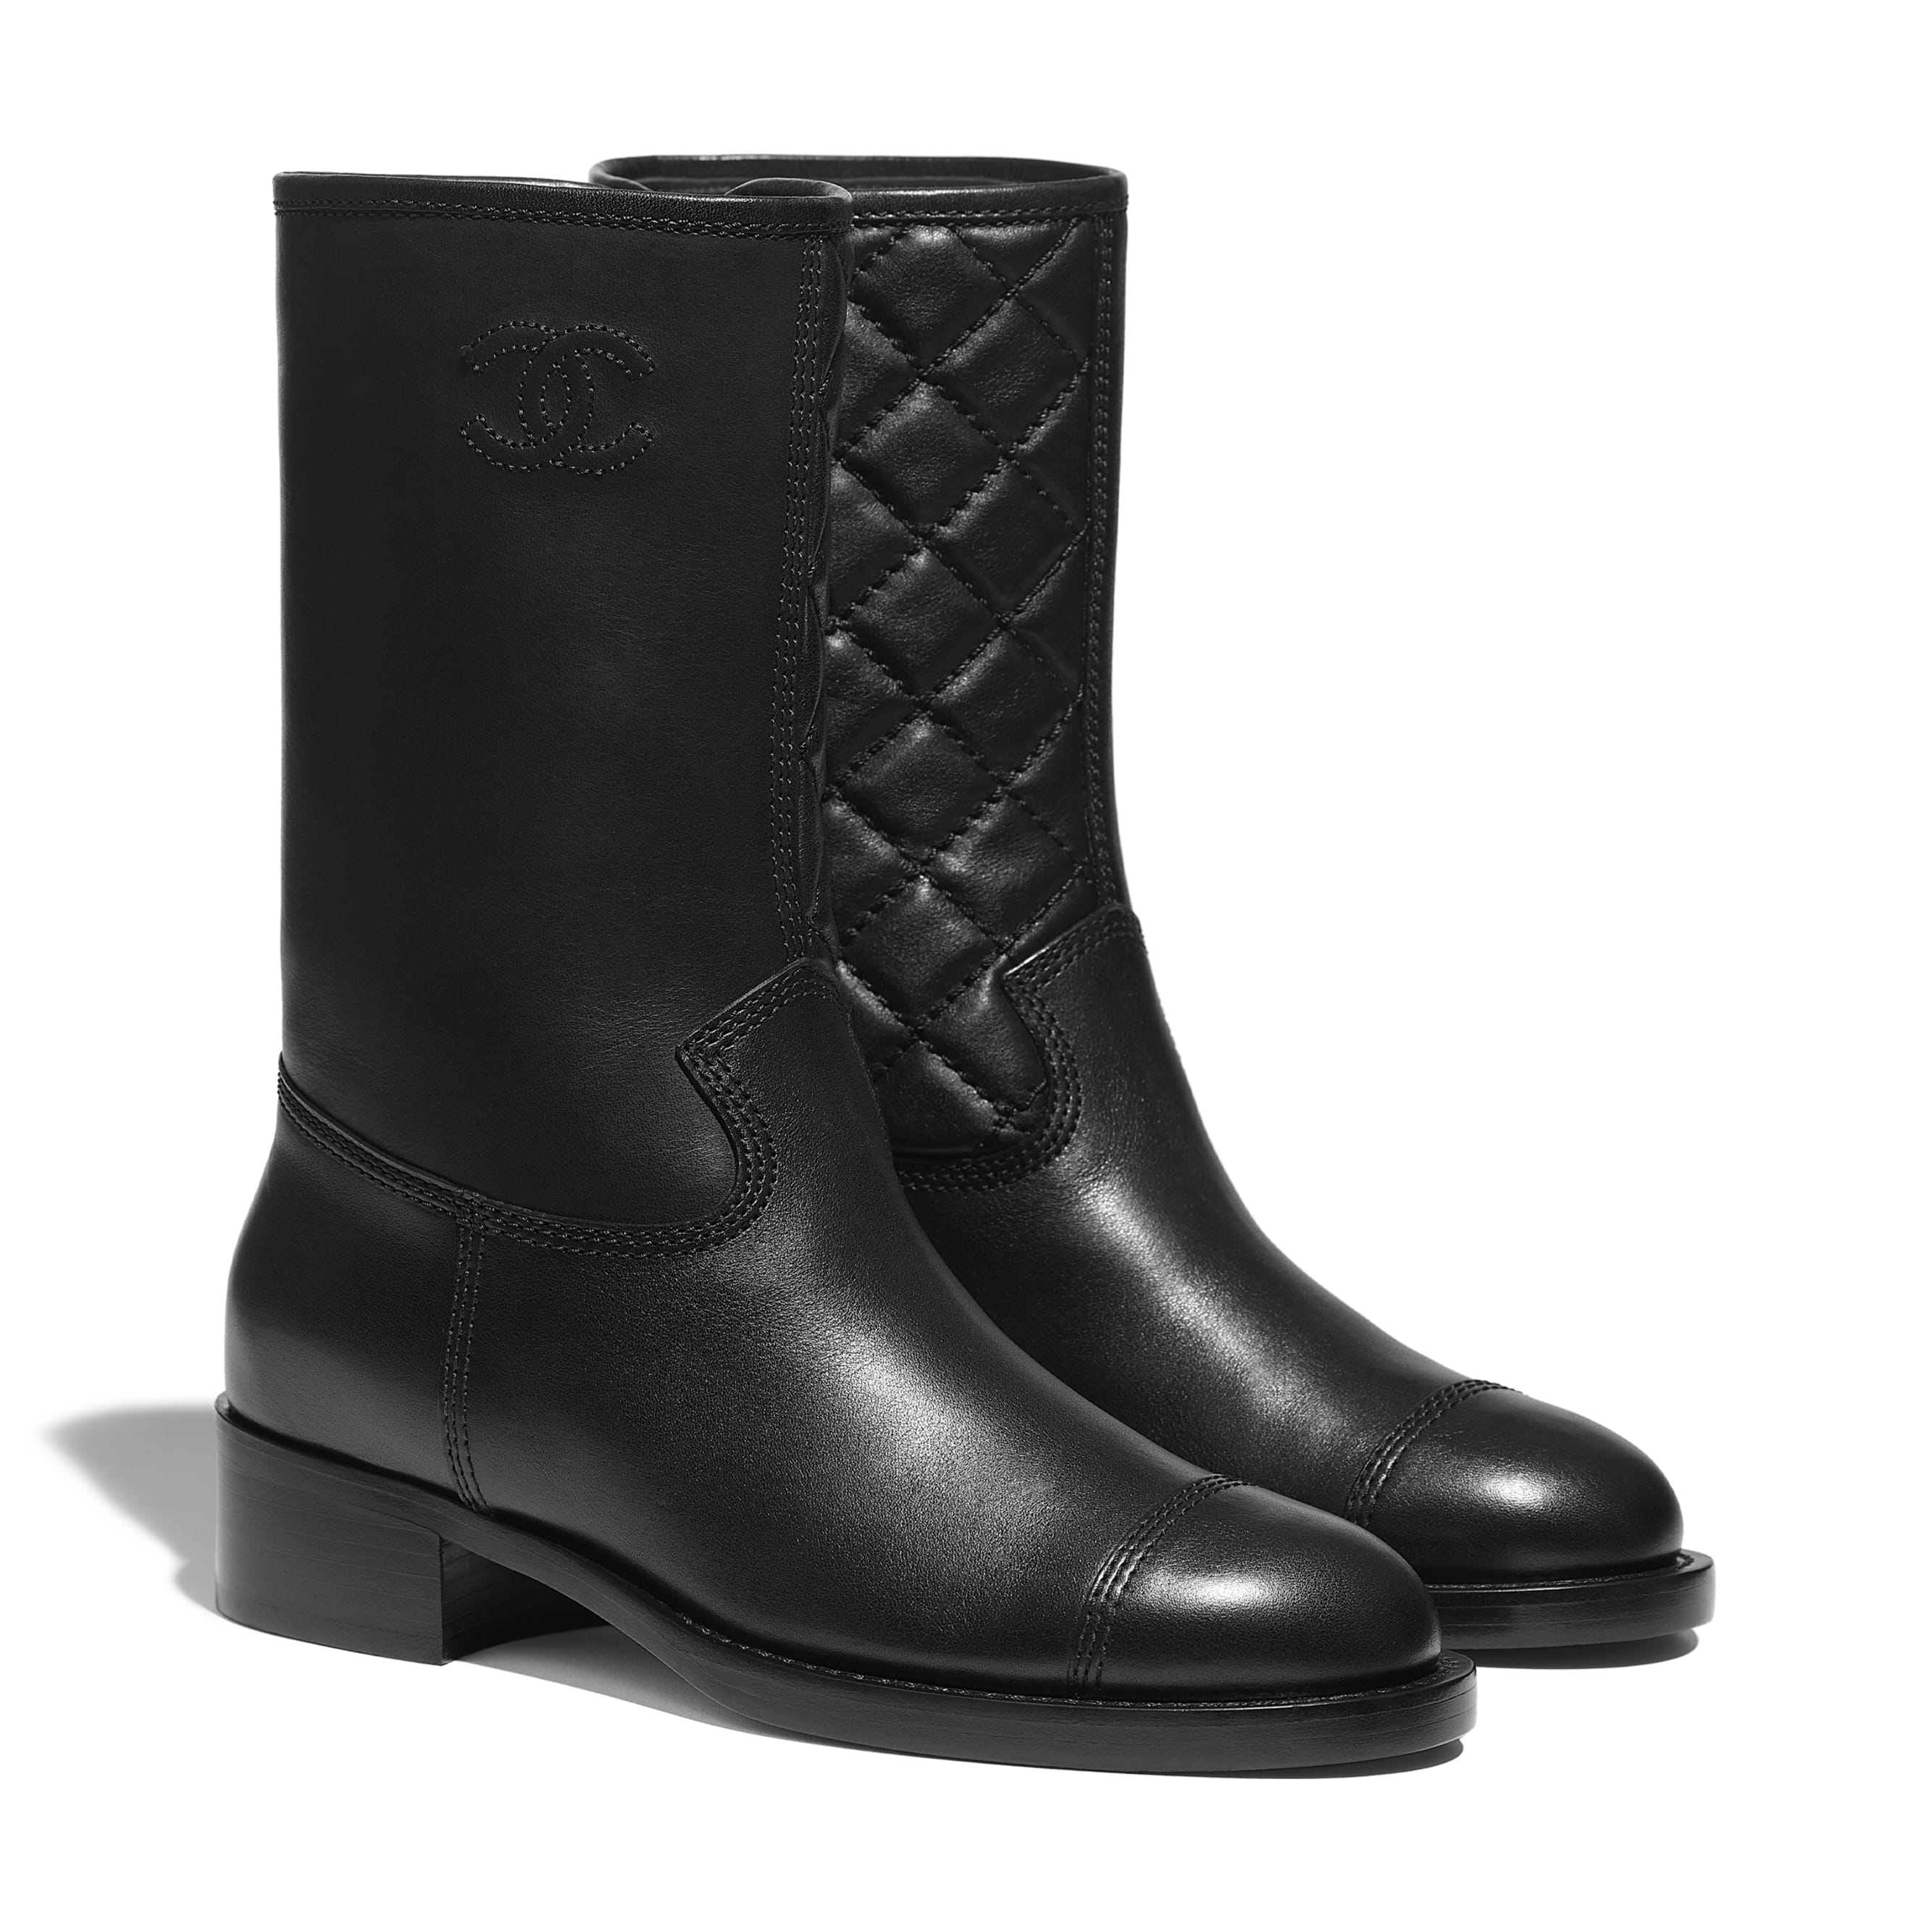 Mid-Calf Boots - Black - Calfskin - CHANEL - Alternative view - see standard sized version